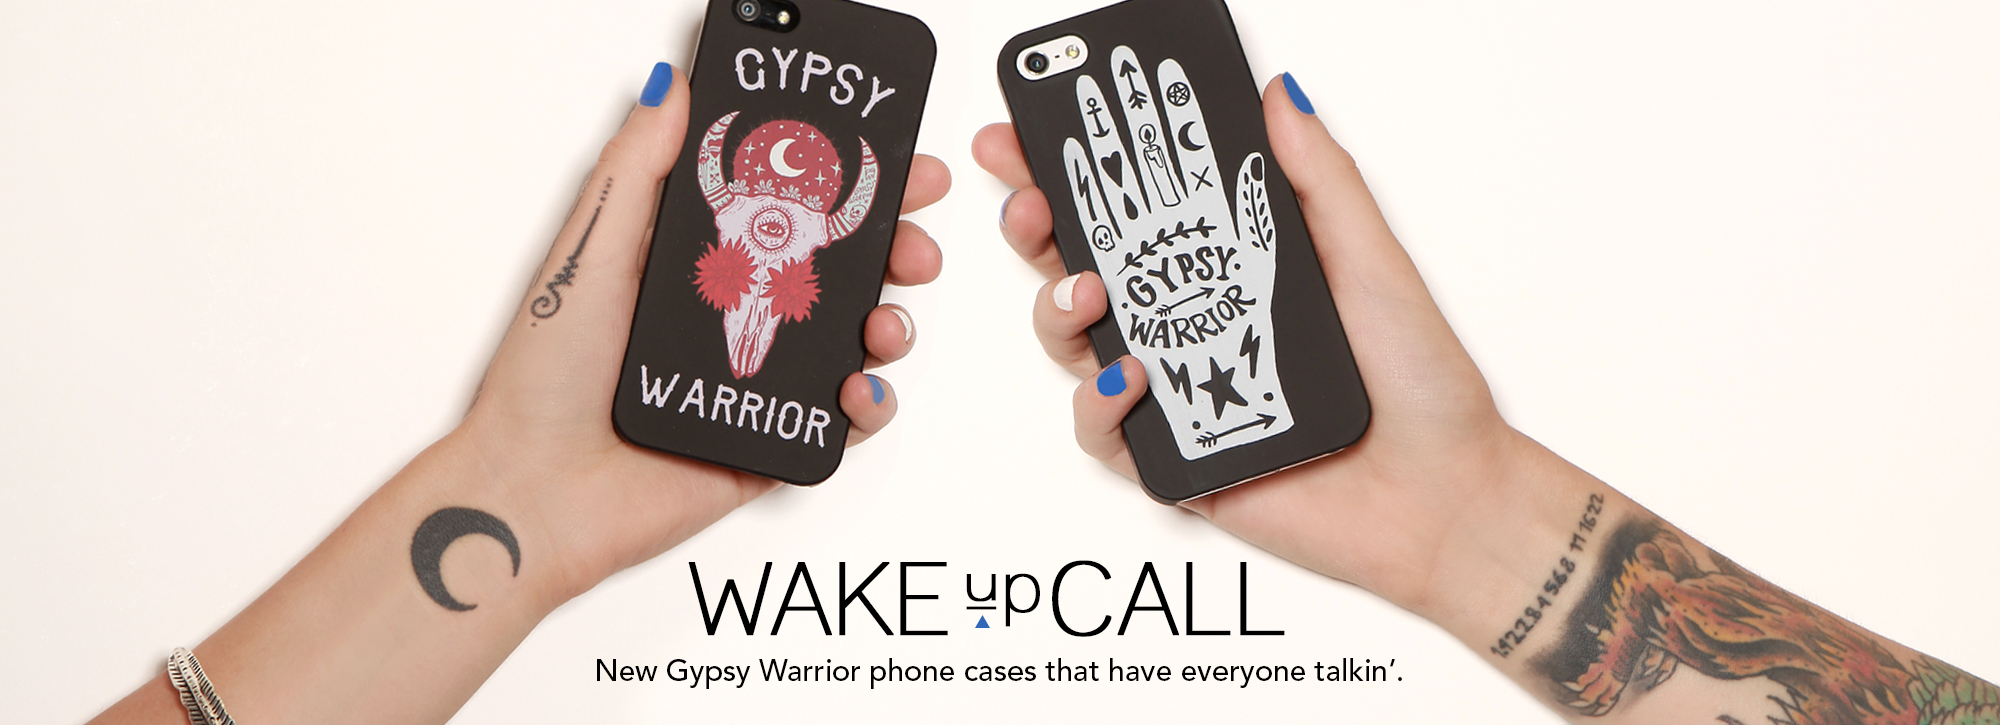 Edgy & Vintage-Inspired Women's Clothing at Gypsy Warrior